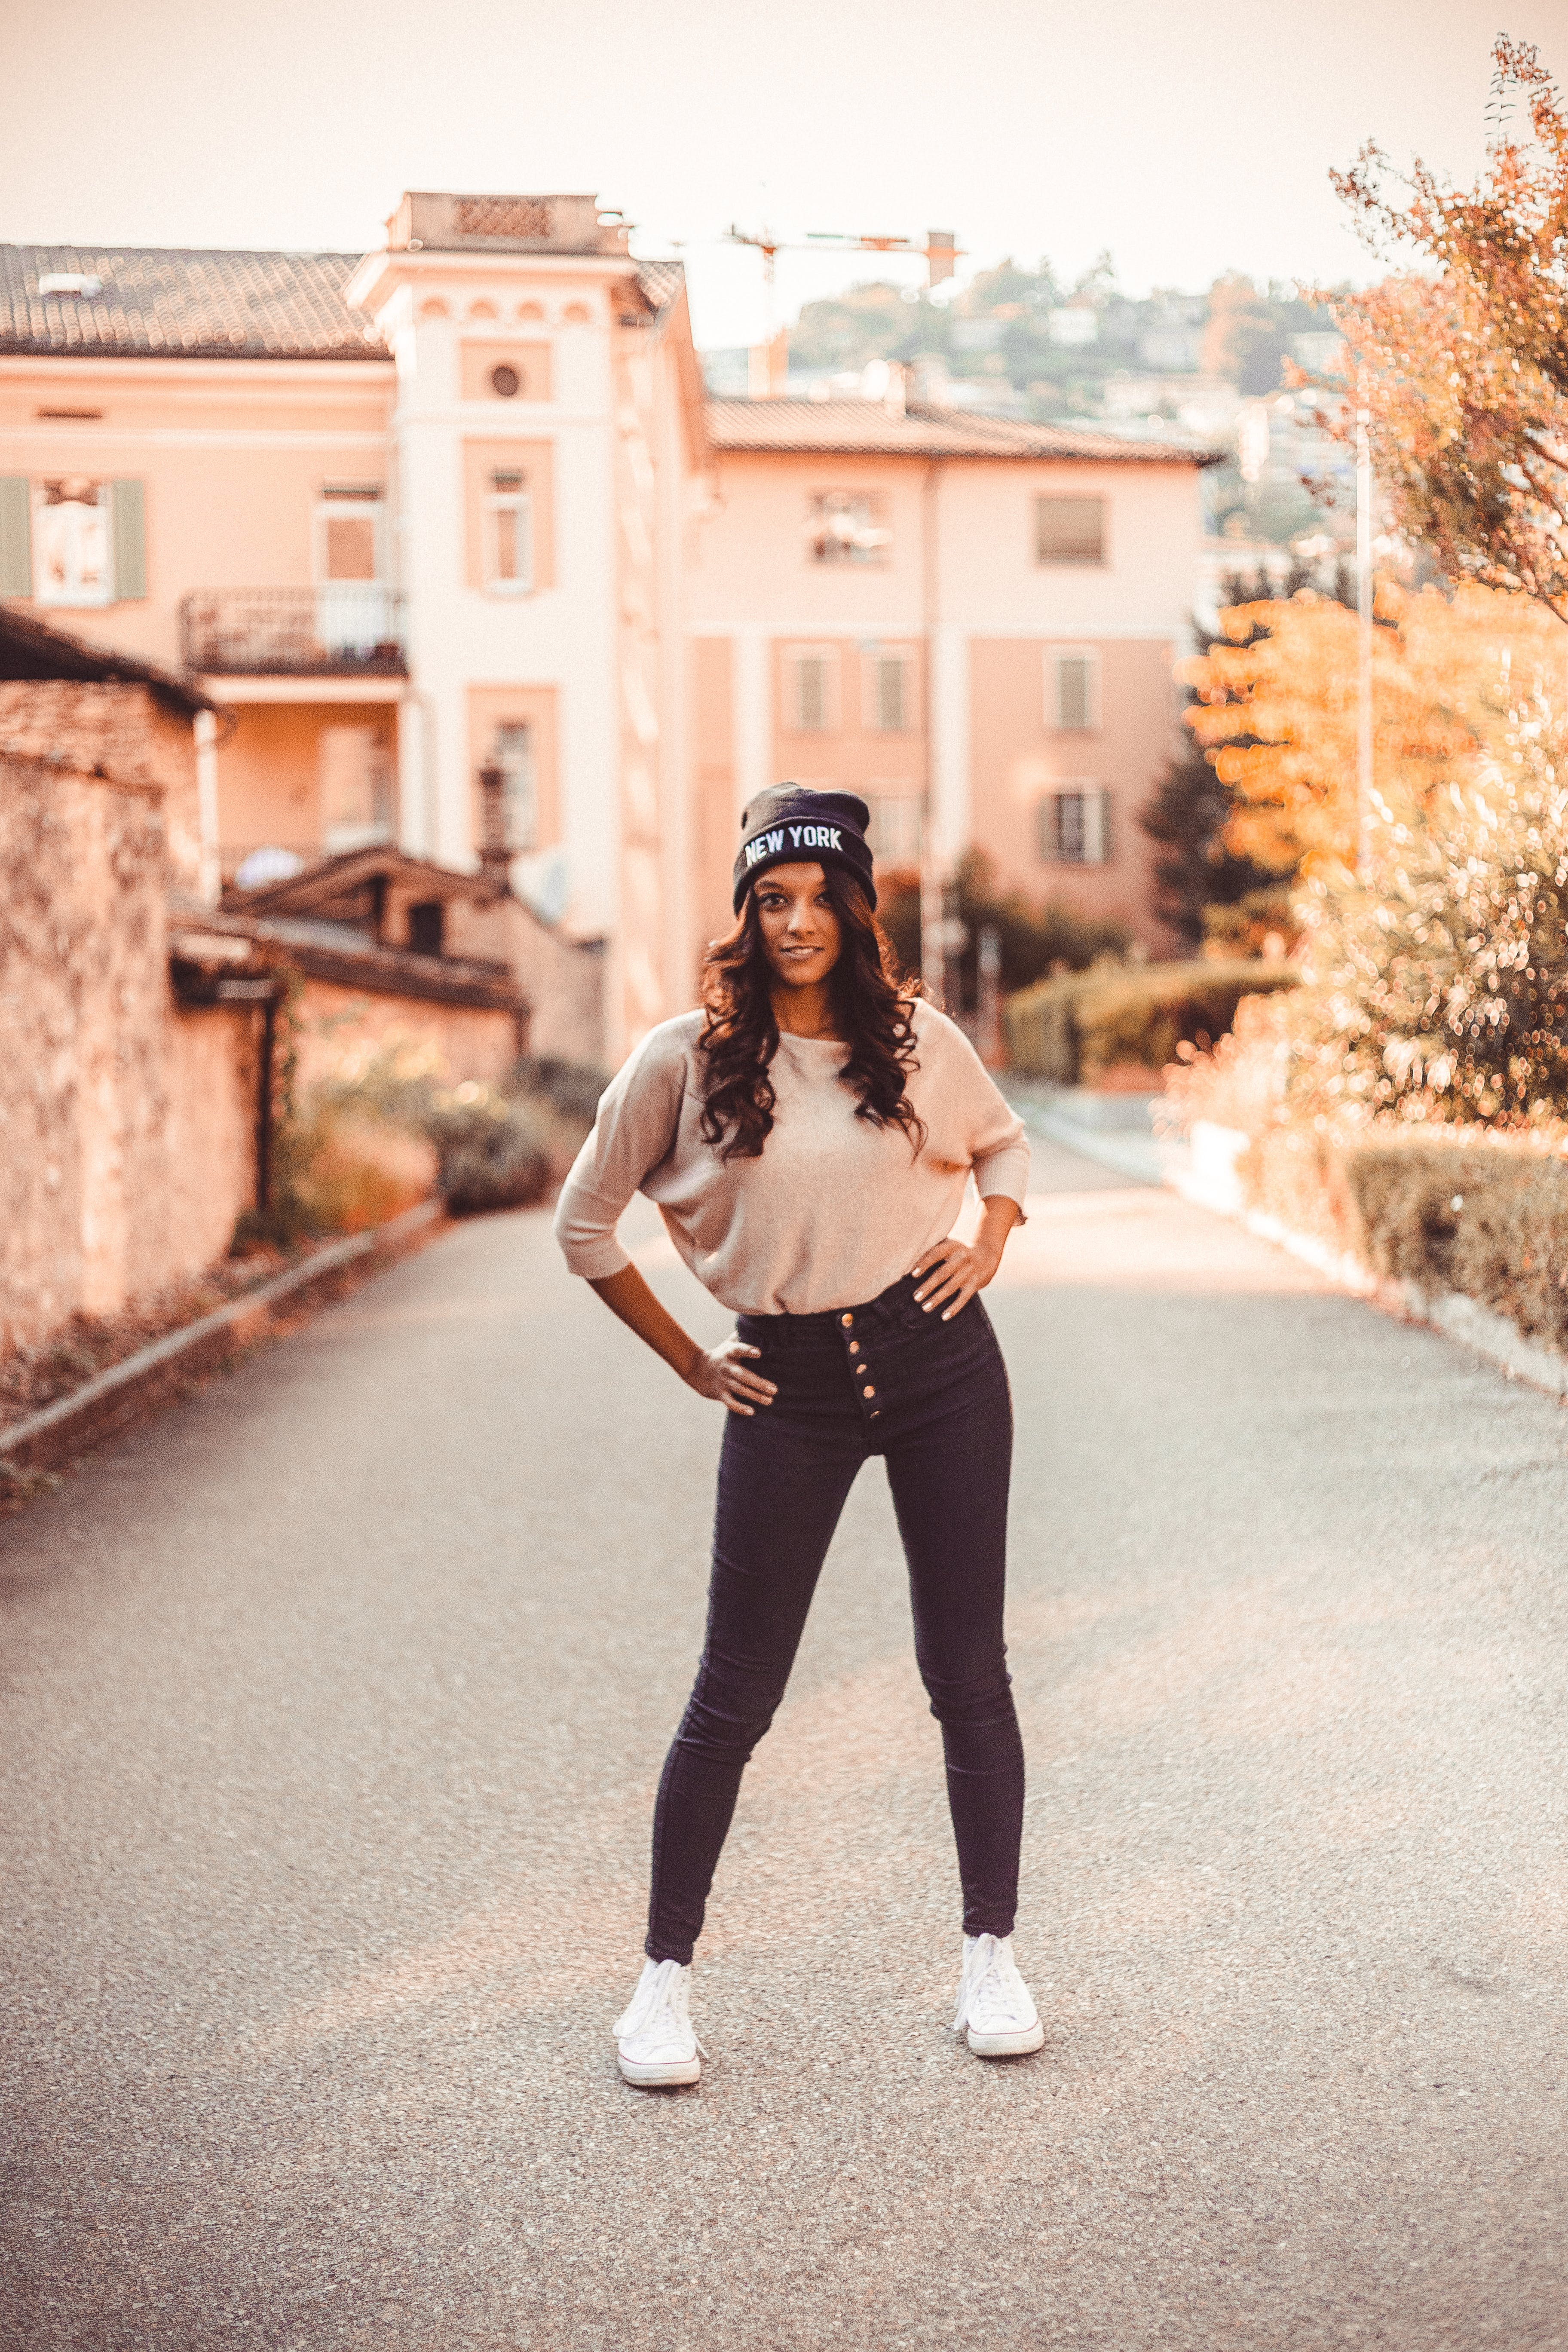 Woman Posing On The Road